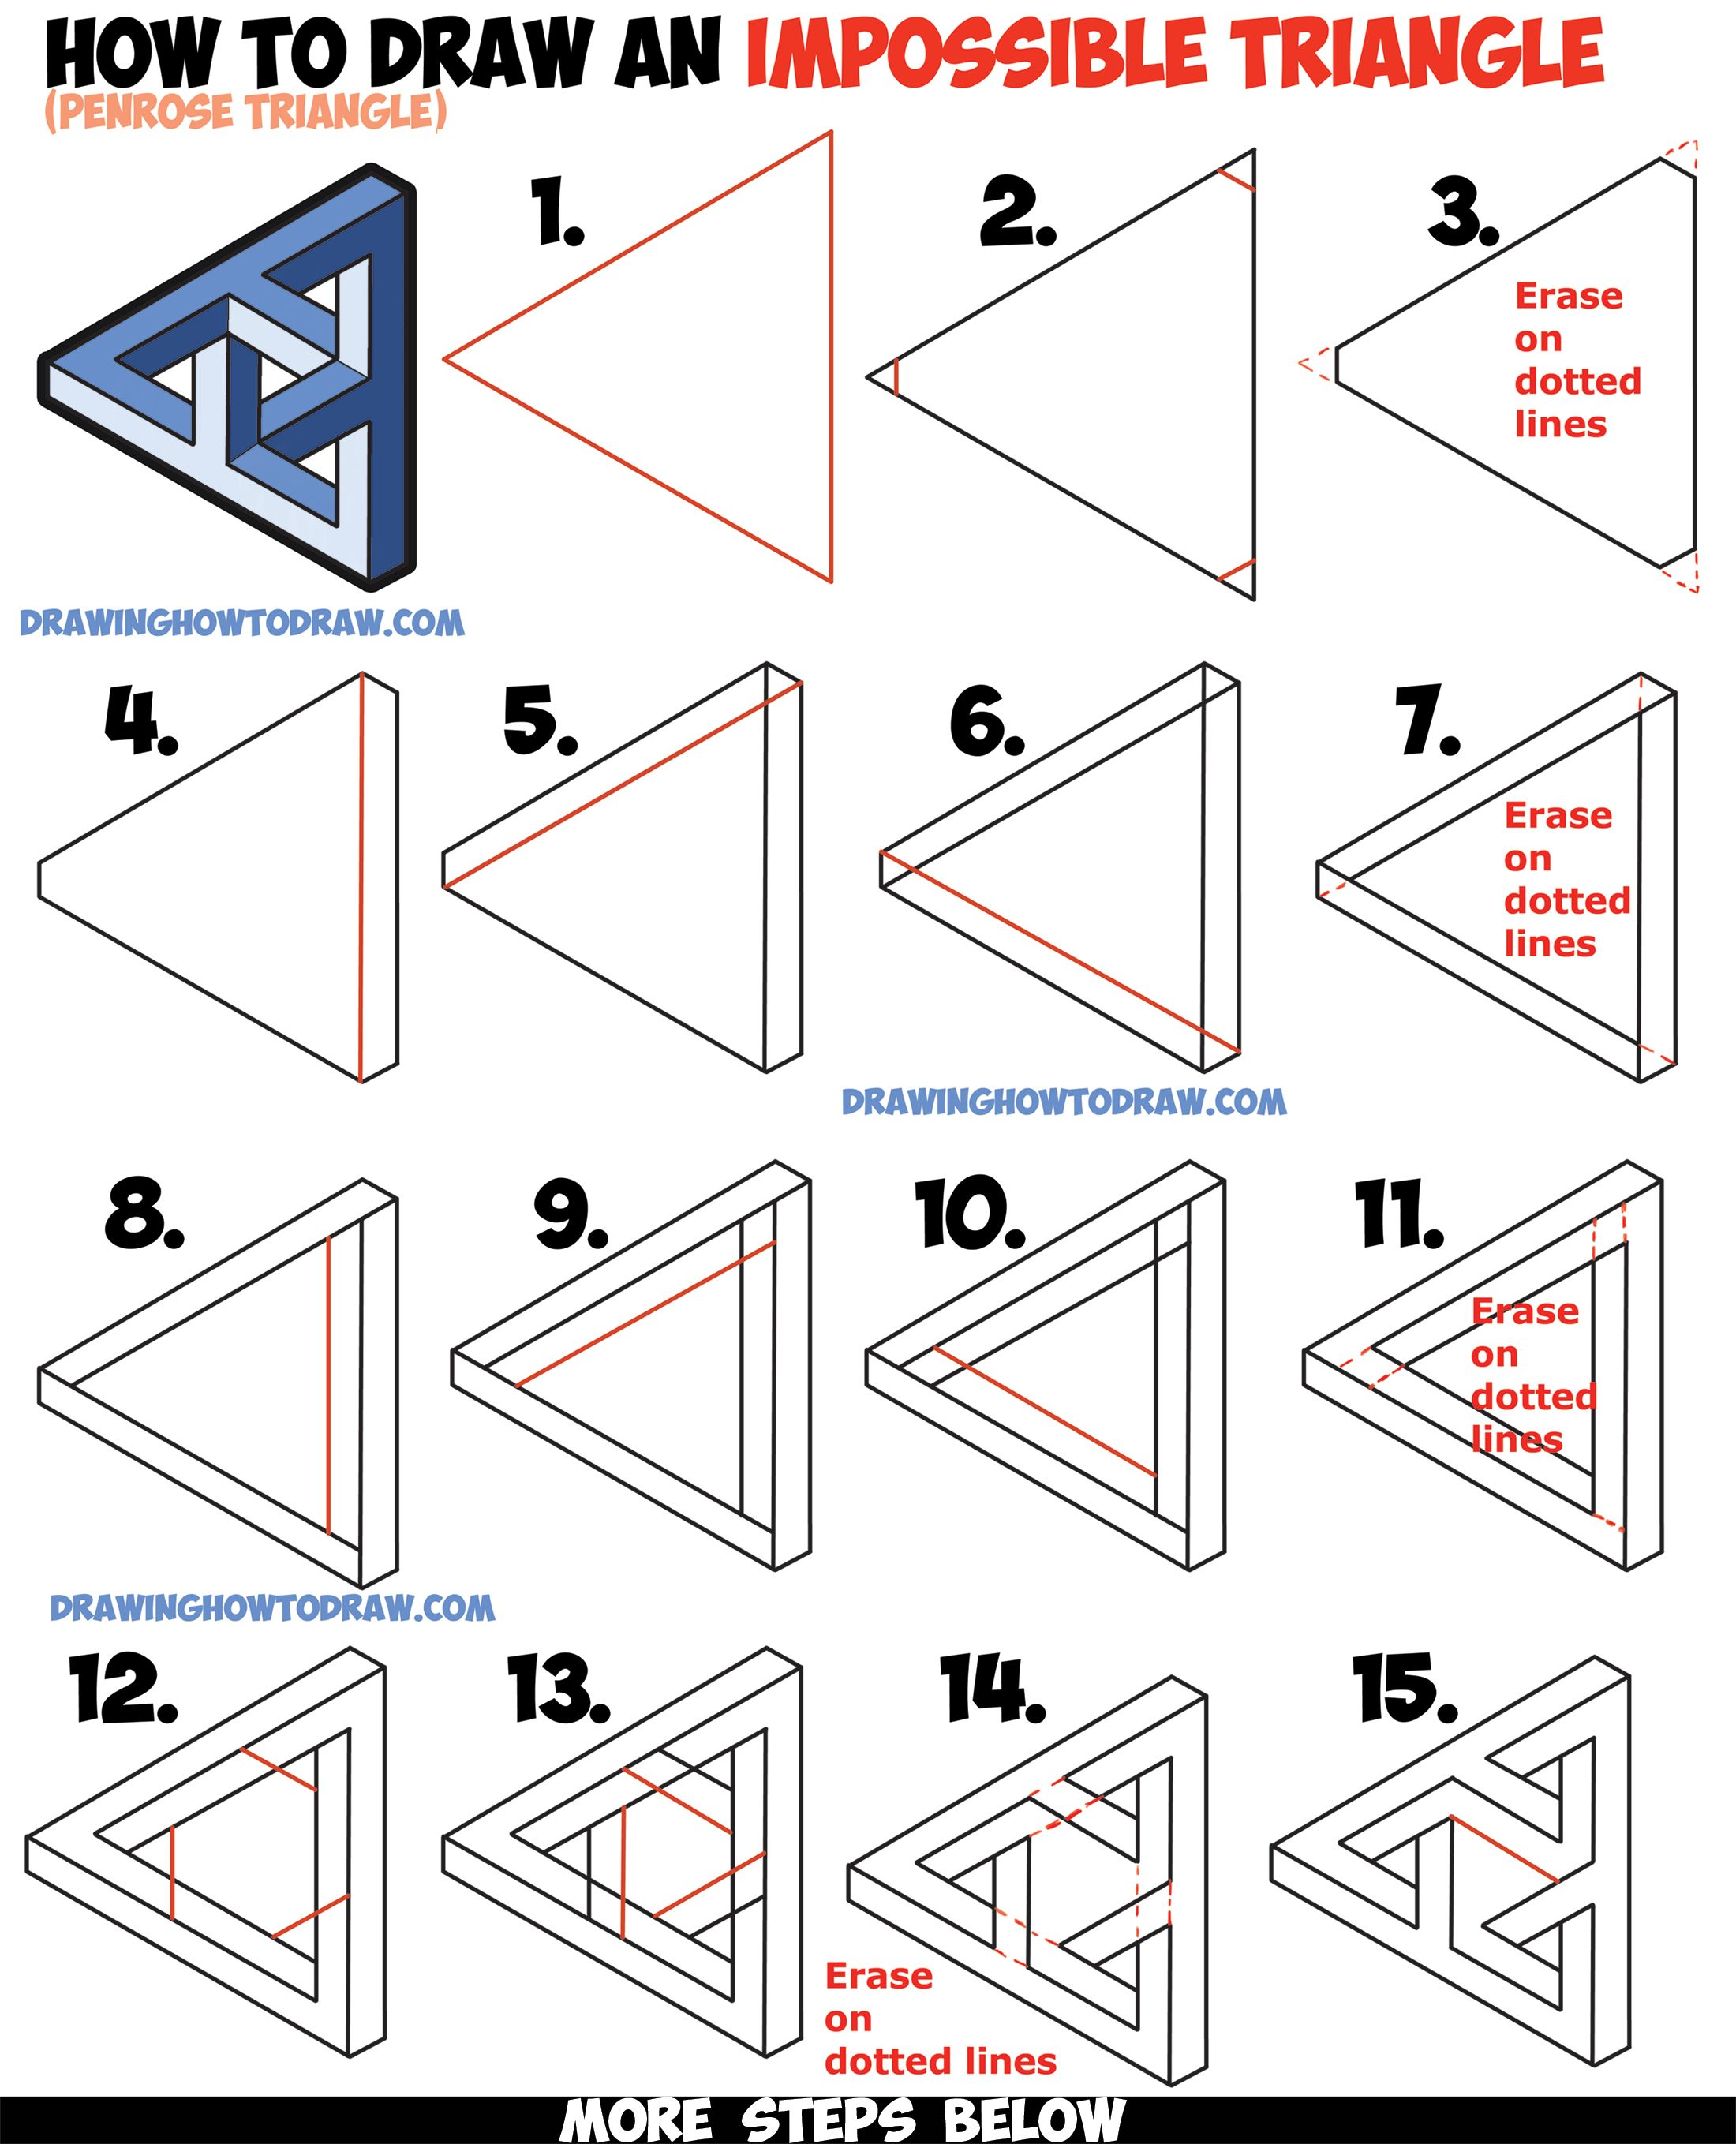 2200x2717 How To Draw An Impossible Triangle (Penrose Triangle) That Looks